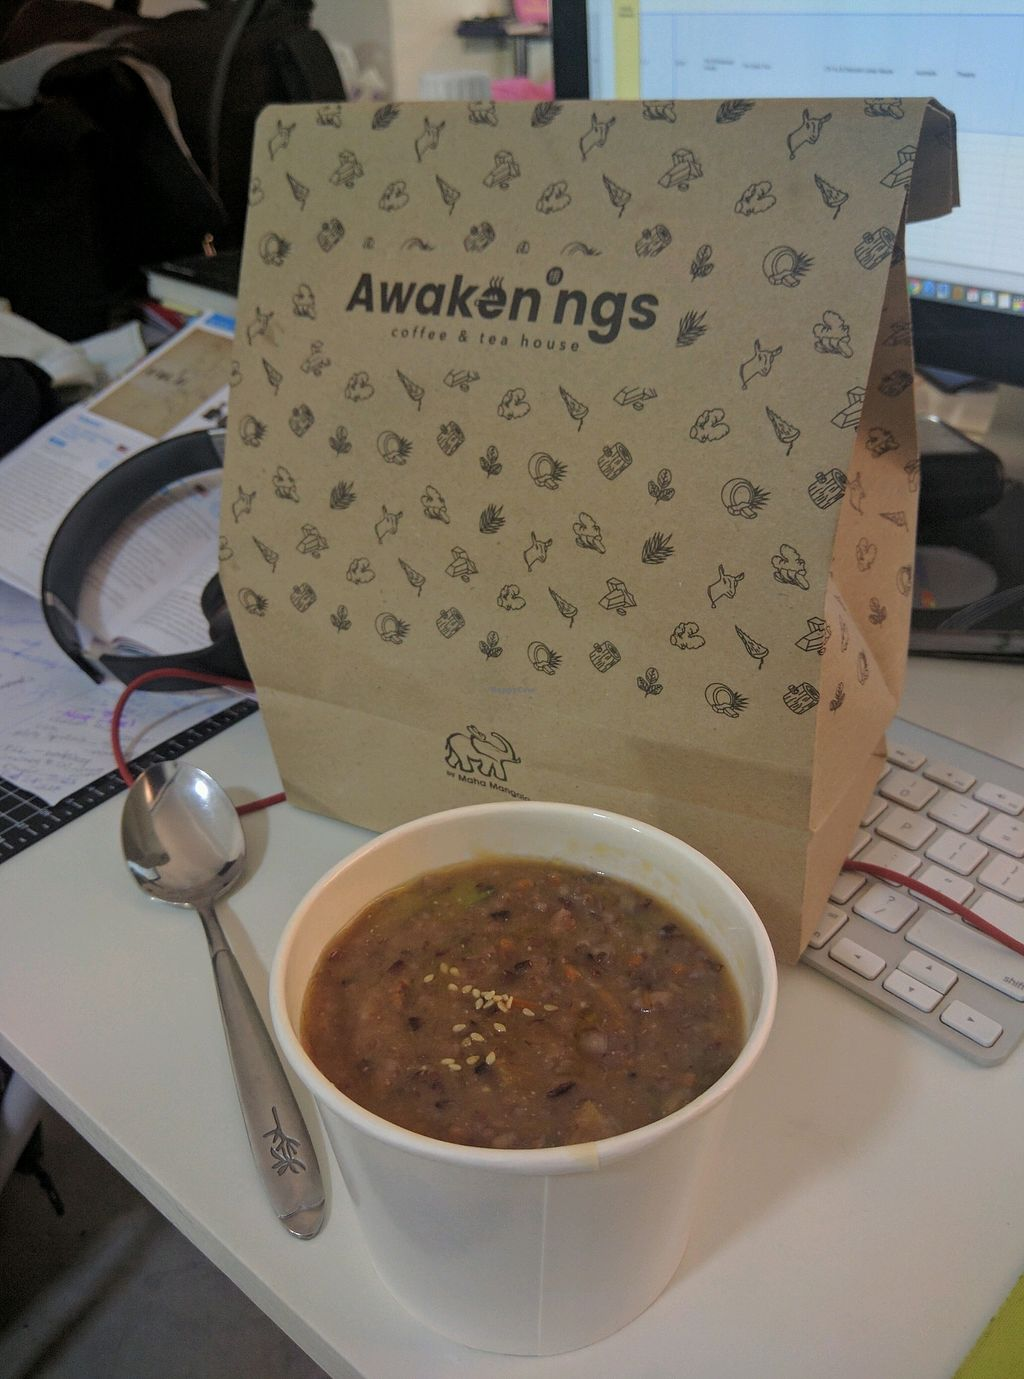 """Photo of Awakenings Coffee & Tea House  by <a href=""""/members/profile/Summer_Tan"""">Summer_Tan</a> <br/>Takeaway Porridge, Good satisfying and filling portion <br/> January 28, 2018  - <a href='/contact/abuse/image/79685/351887'>Report</a>"""